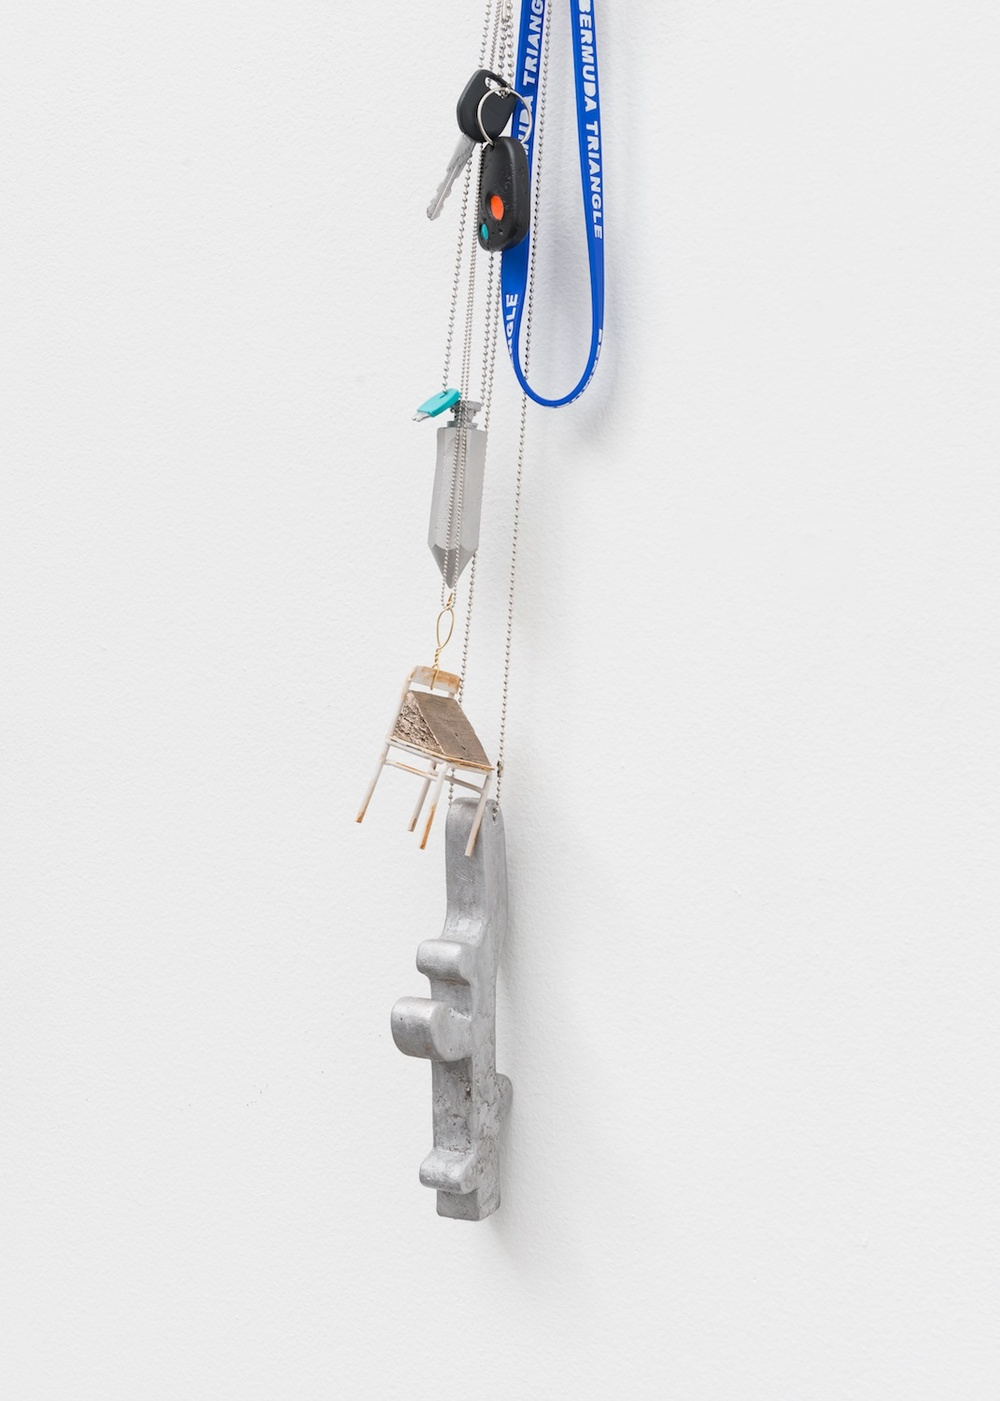 Chris Bradley  Untitled Token  2015 Acrylic paint on cast bronze, acrylic paint on steel, wire, key rings, painted wood, ball chains, hardware 52h x 6w x 4d in CB141